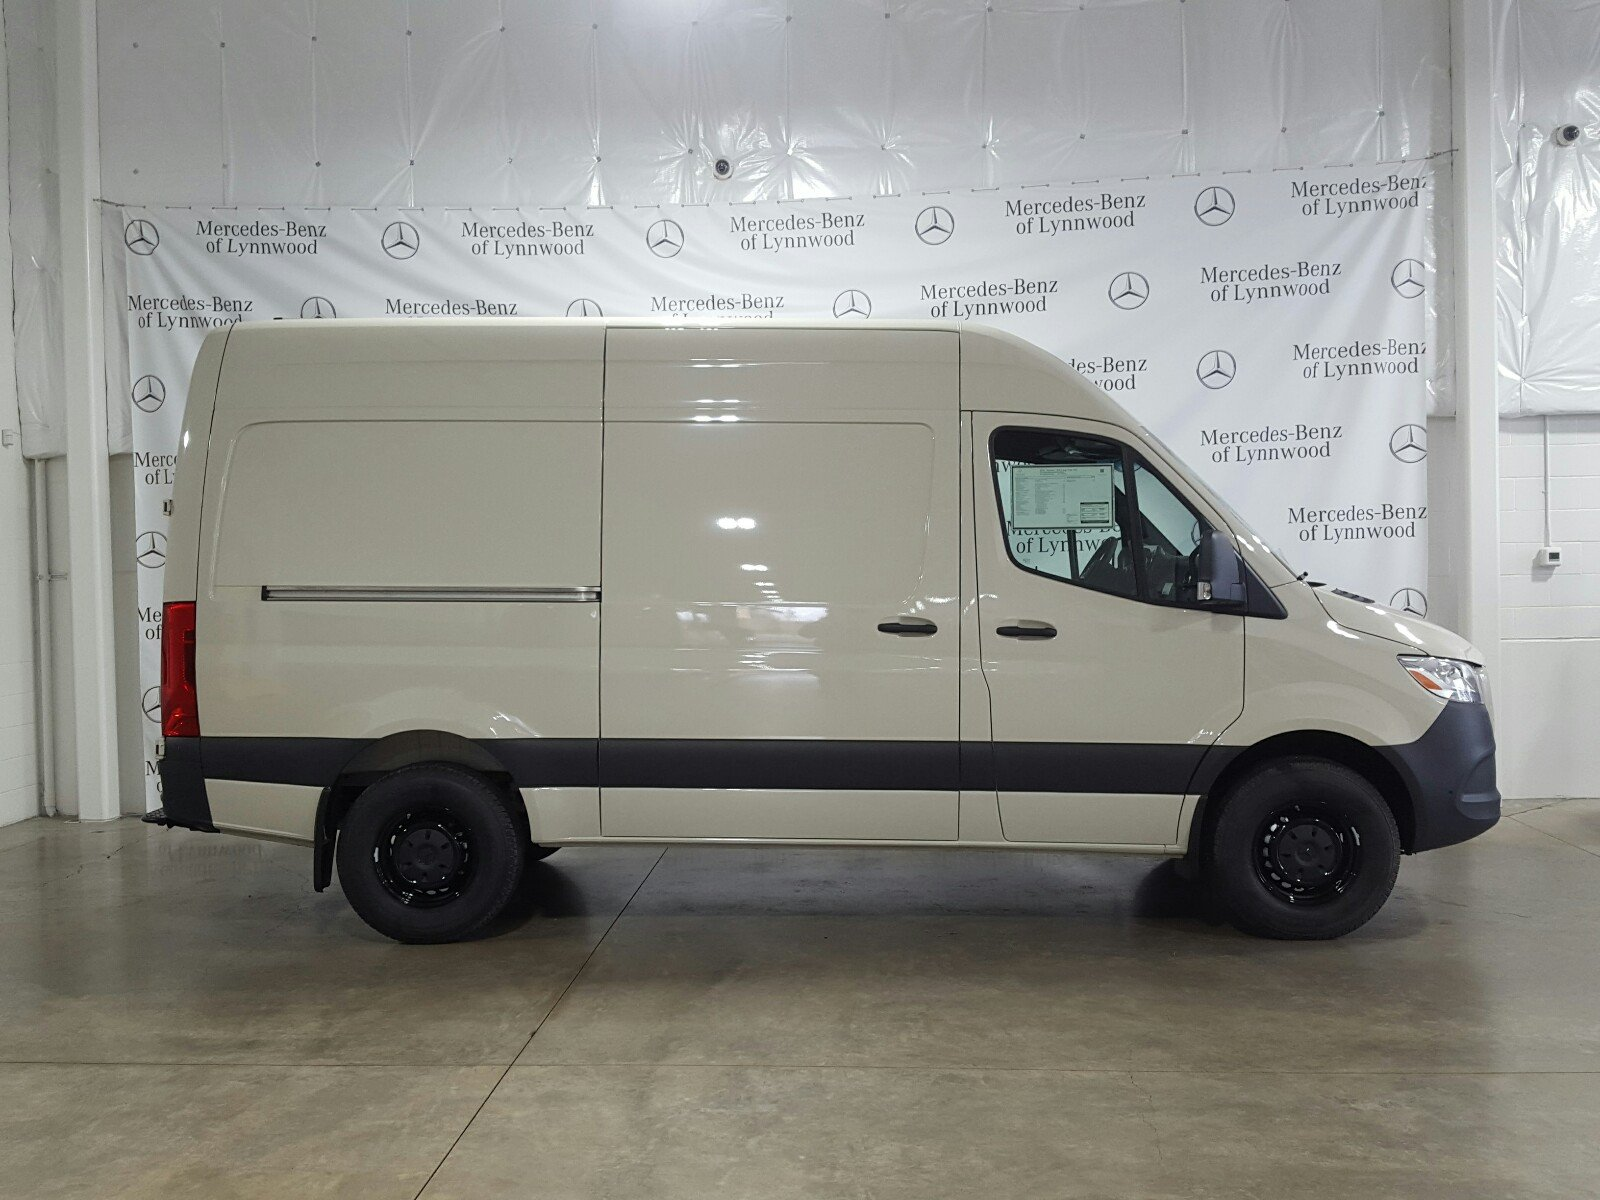 New 2019 Mercedes-Benz Sprinter Cargo Van 2500 High Roof V6 144 RWD